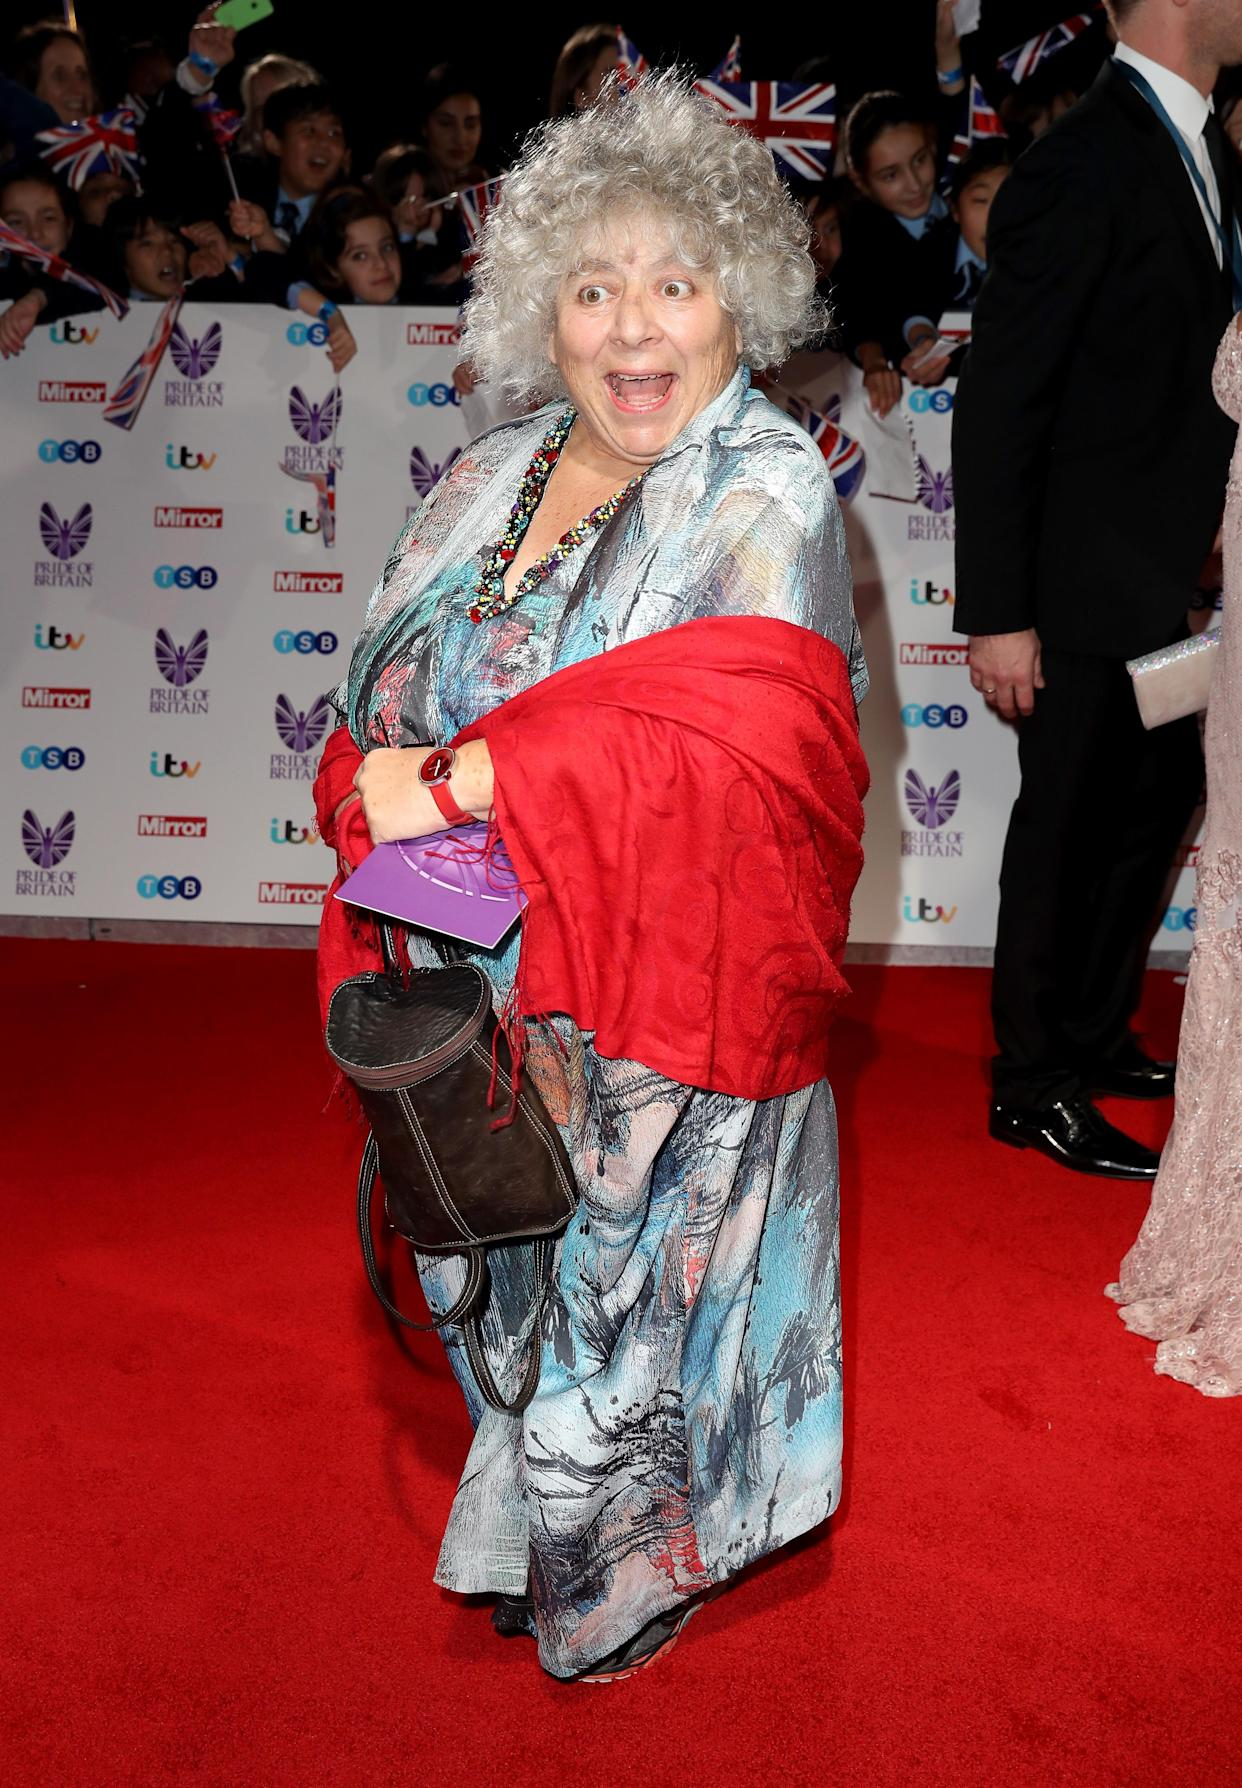 LONDON, ENGLAND - OCTOBER 31:  Miriam Margolyes attends the Pride Of Britain awards at the Grosvenor House Hotel on October 31, 2016 in London, England.  (Photo by Chris Jackson/Getty Images)